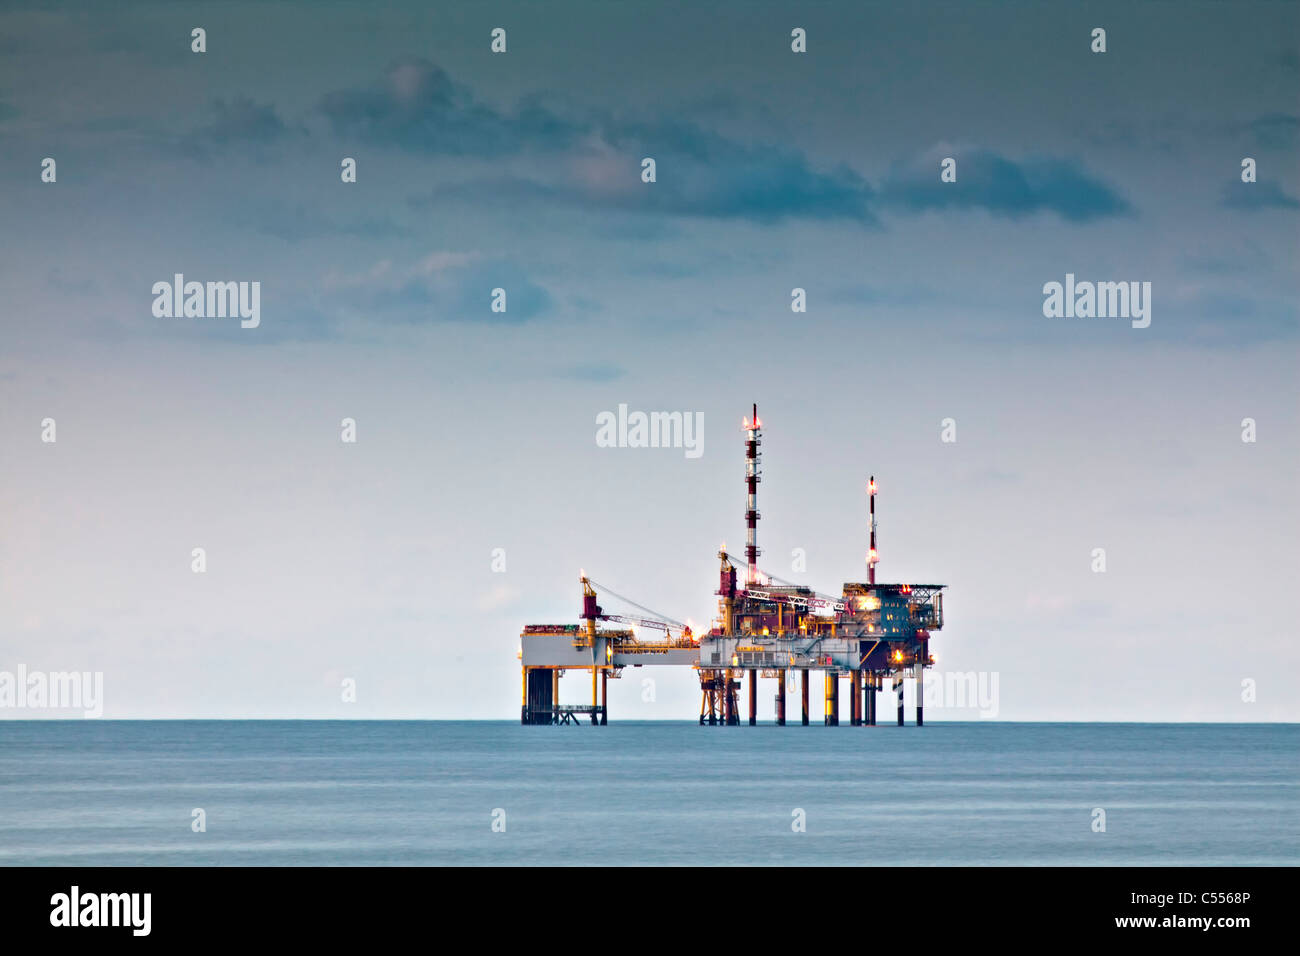 The Netherlands, Buren, Ameland Island, belonging to Wadden Sea Islands. Unesco World Heritage Site. Gas drilling - Stock Image